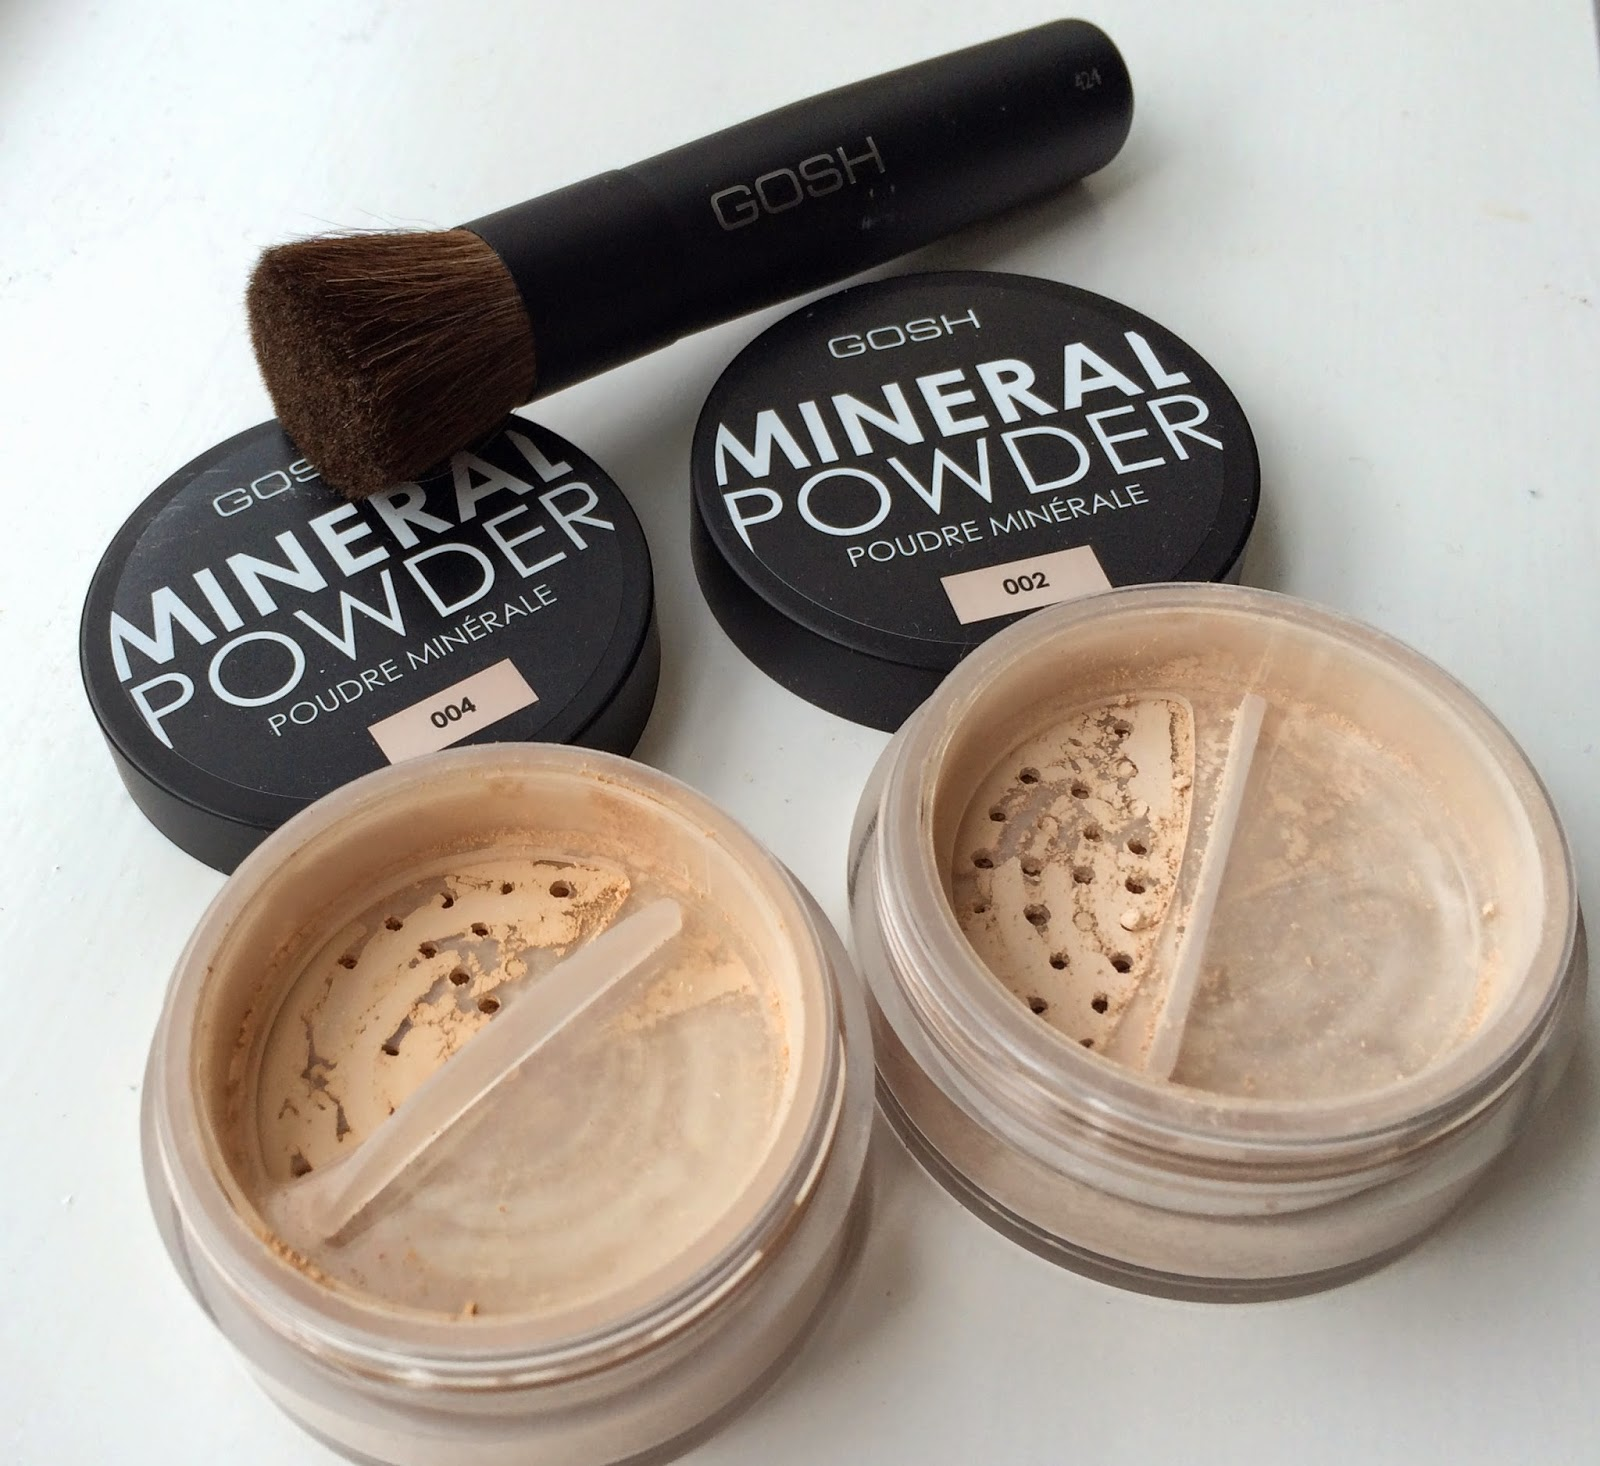 gosh-mineral-powder-review-2014